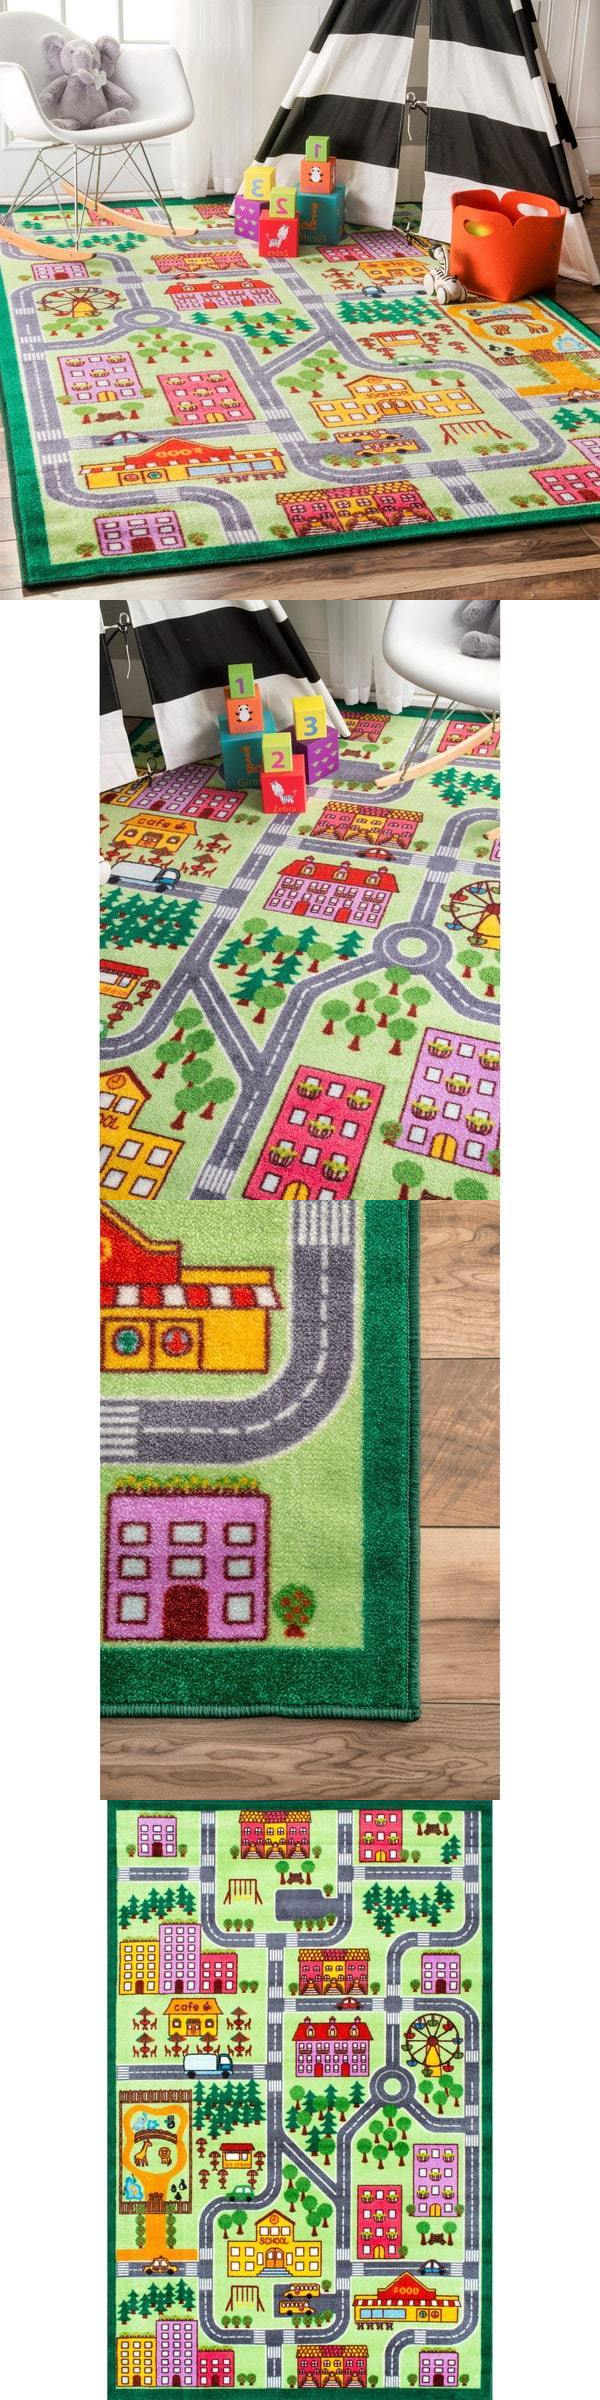 5x7 Area Rugs Geography and History Kids Play Rug City Street Map Road Playroom Mat Track Daycare